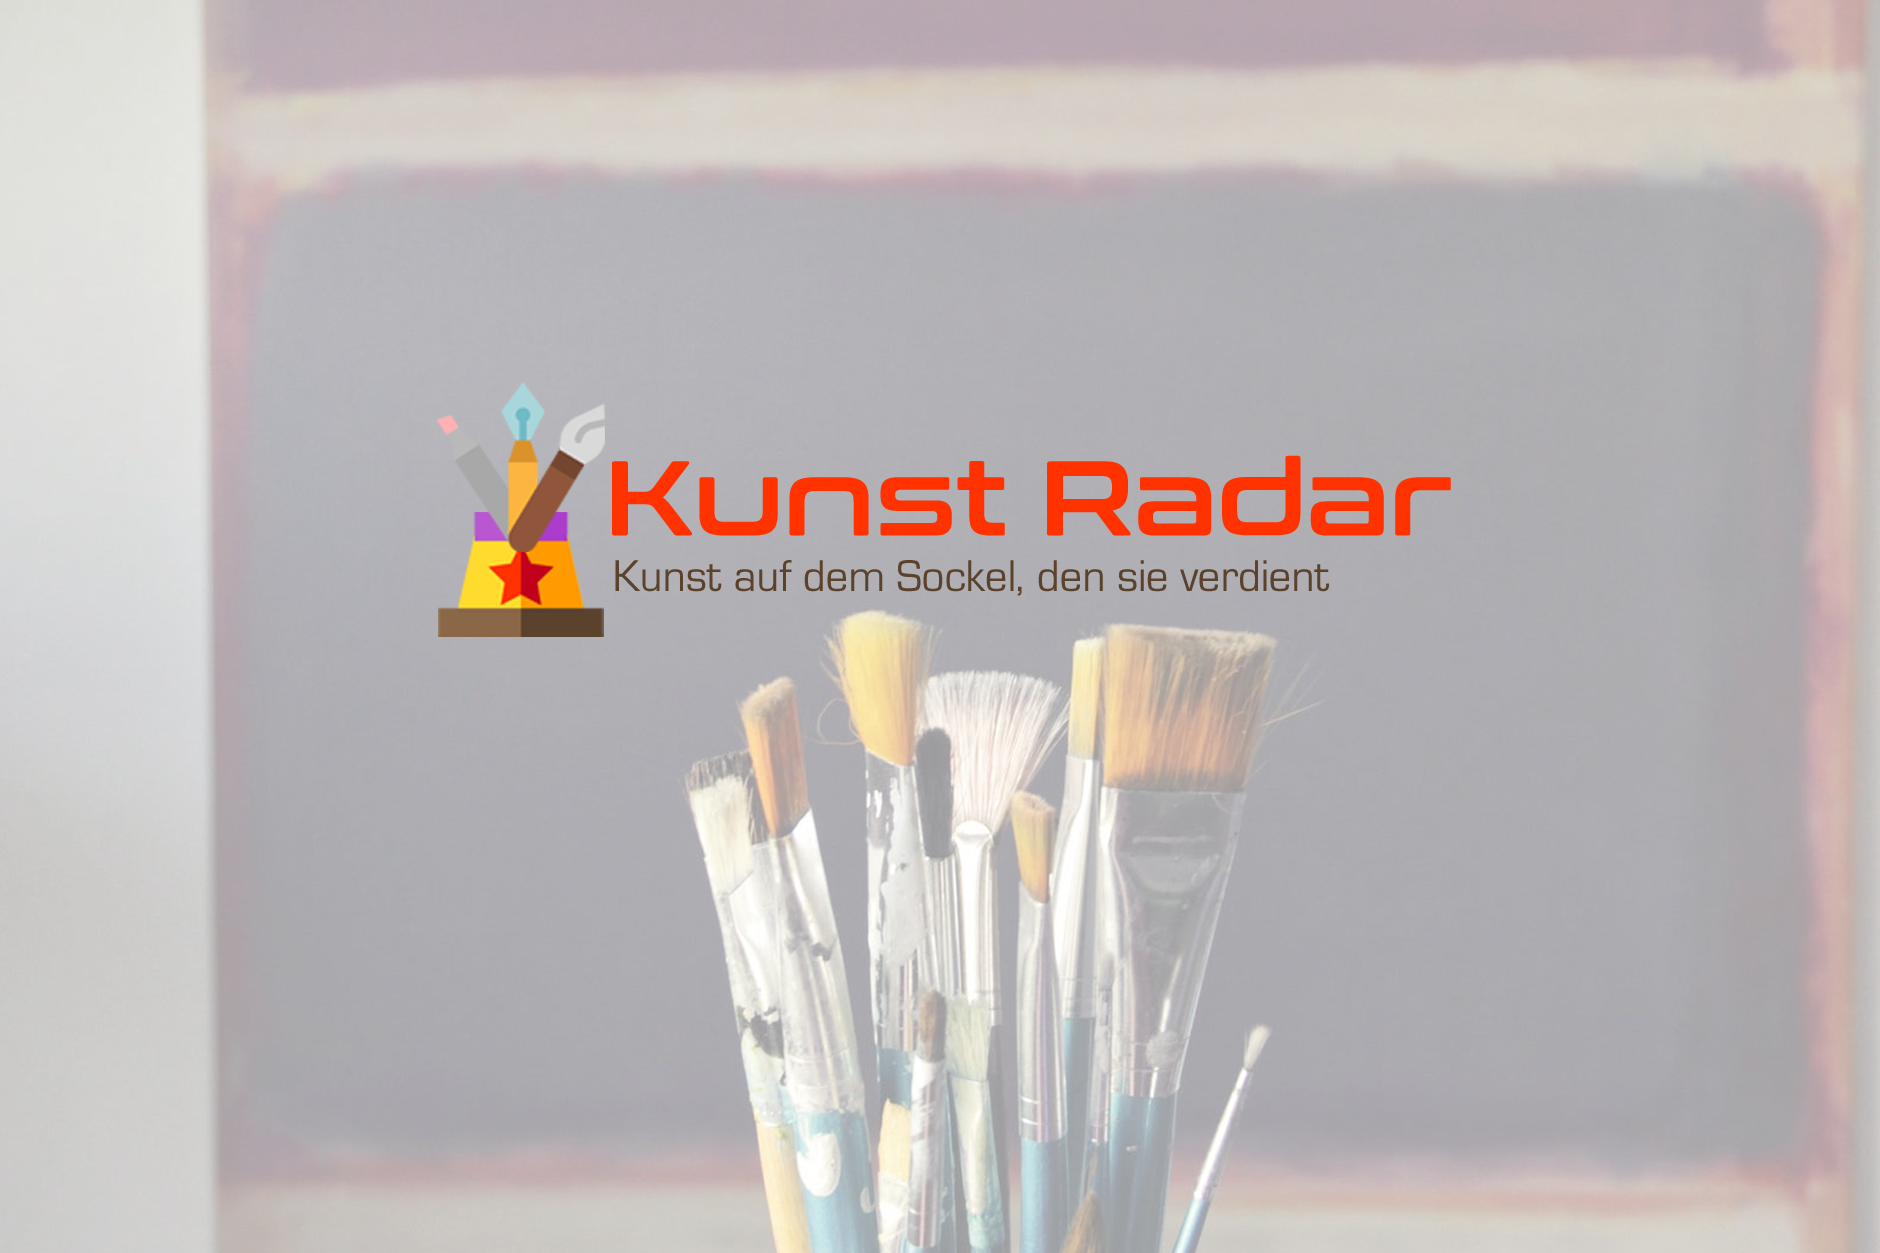 about - Über Kunst Radar